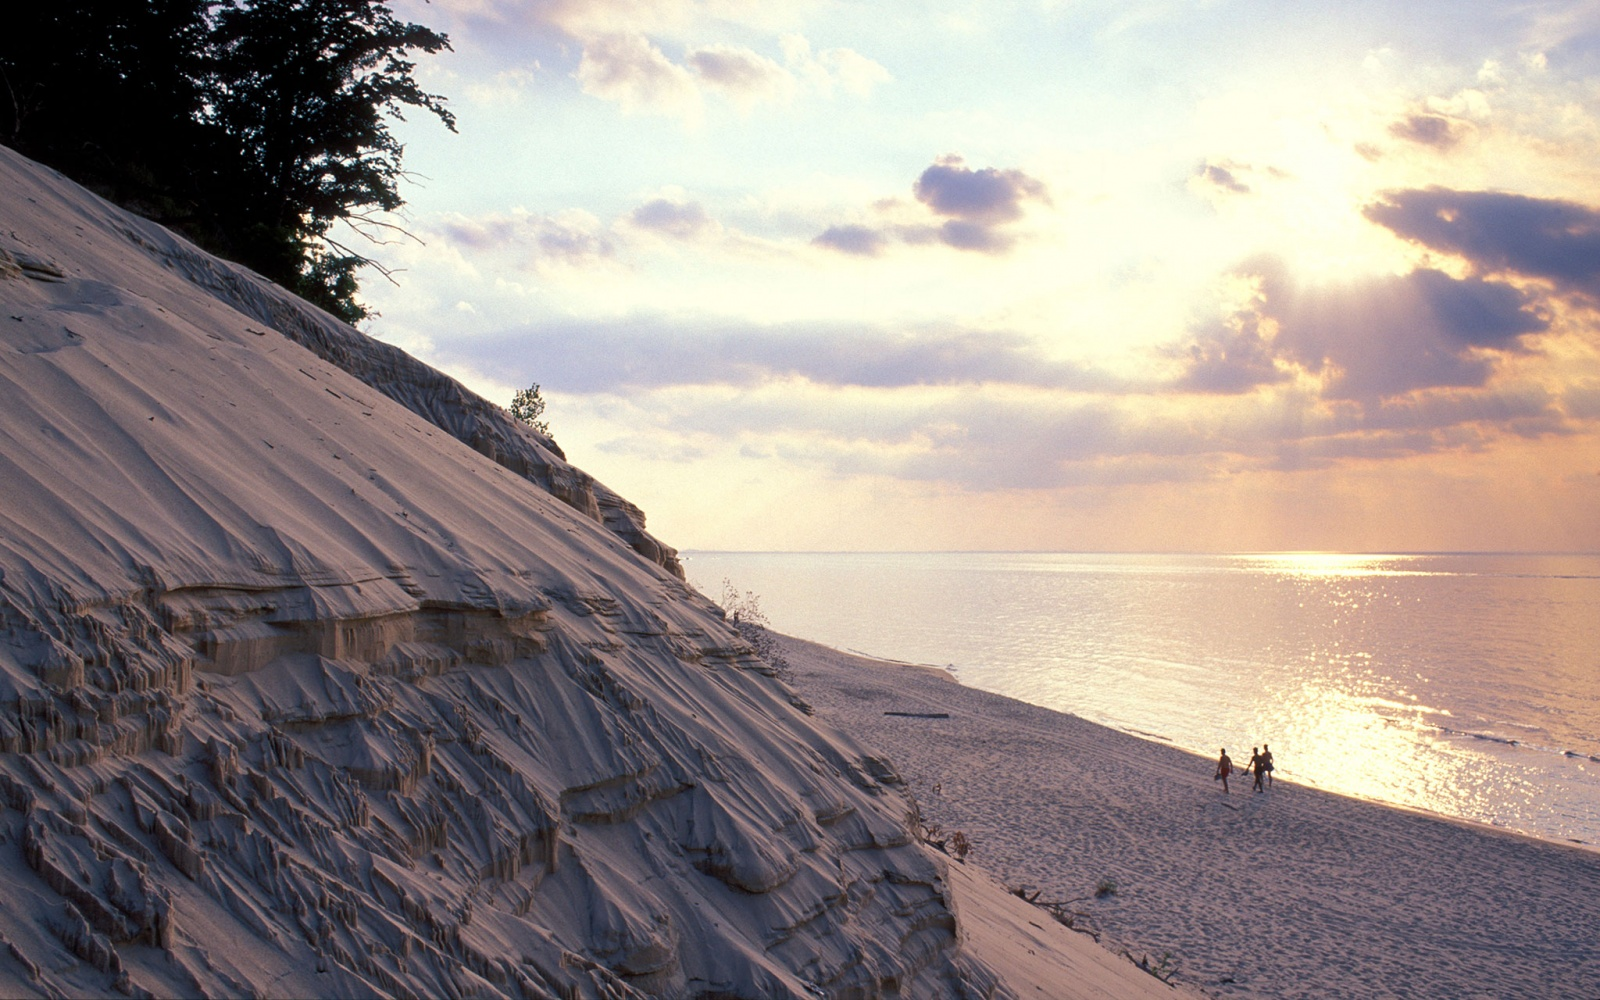 Silver Lake Sand Dunes Area, Michigan